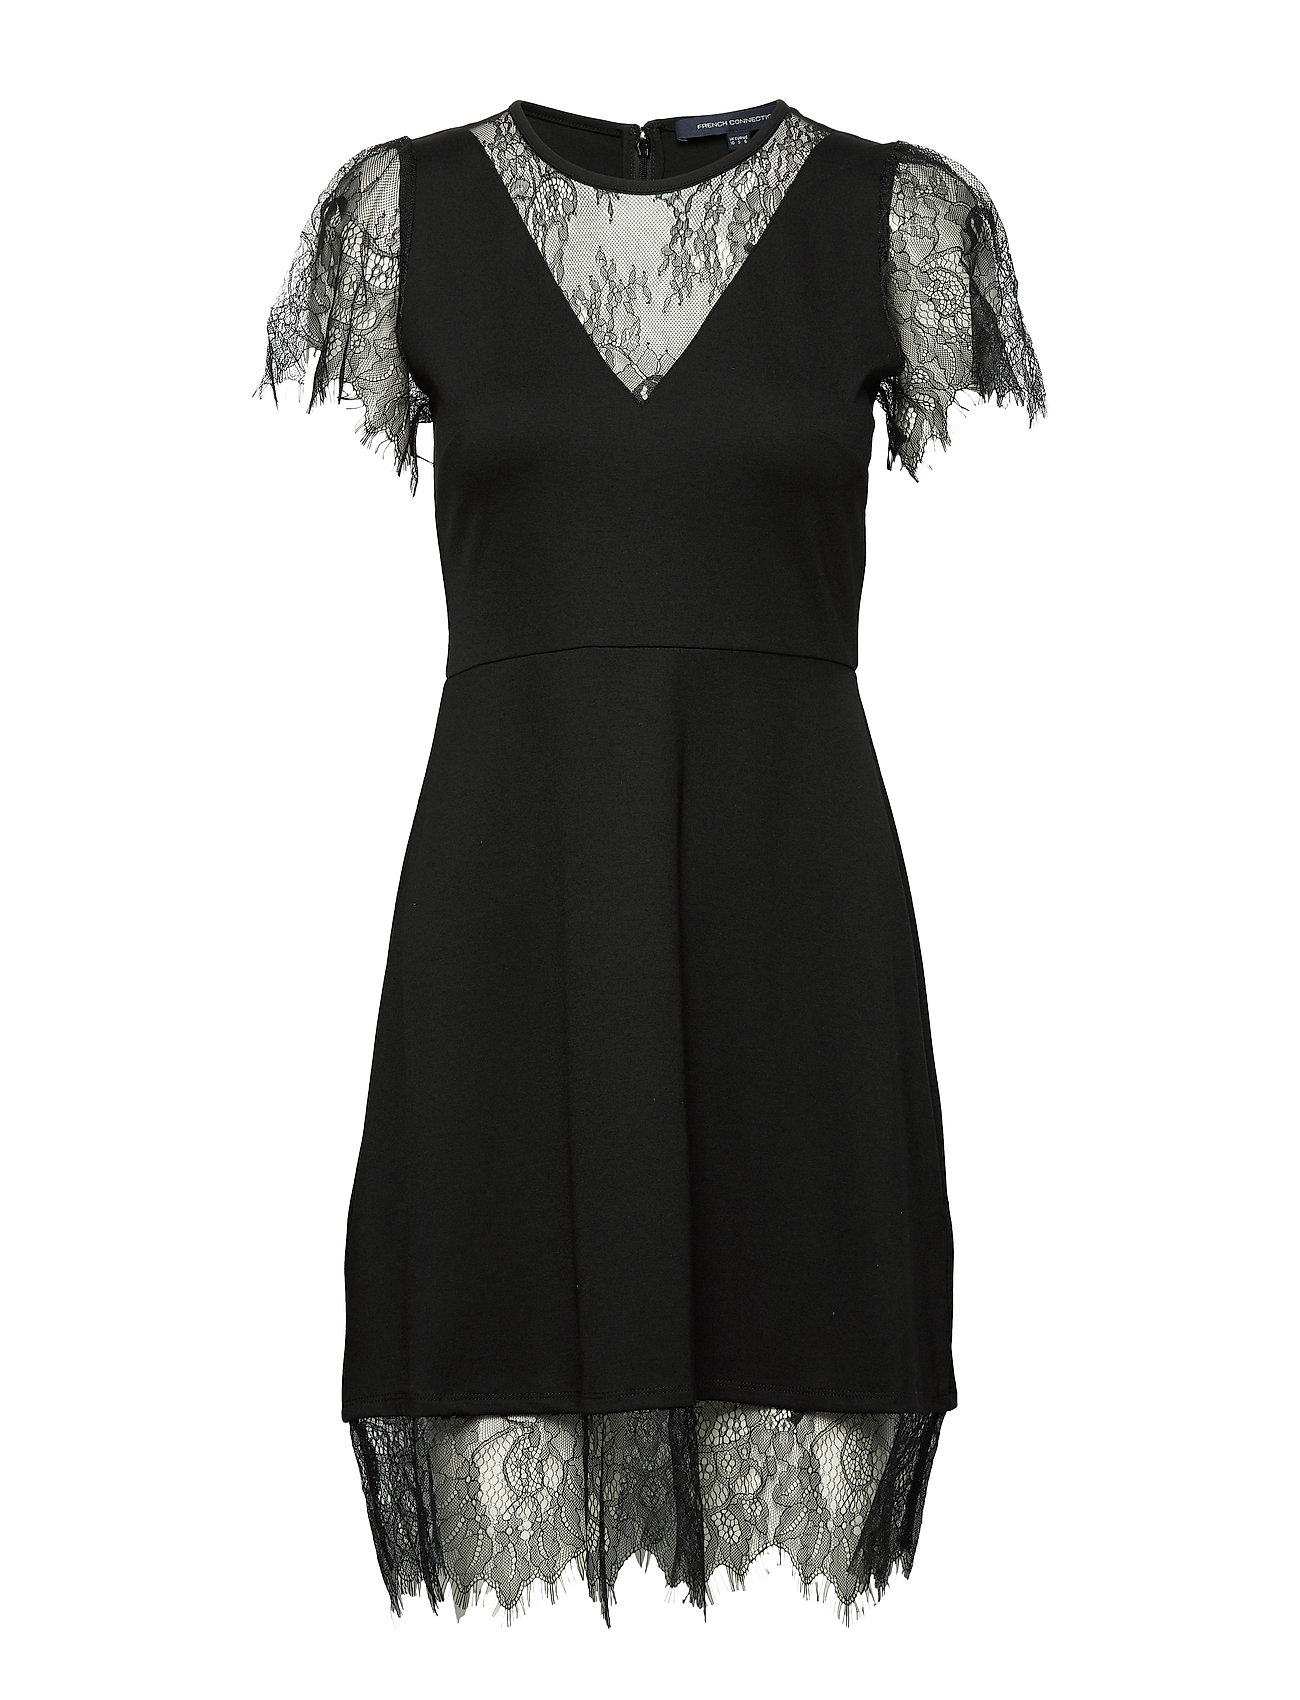 French Connection MADALYN LULA JRSY LACE MX DRES - BLACK